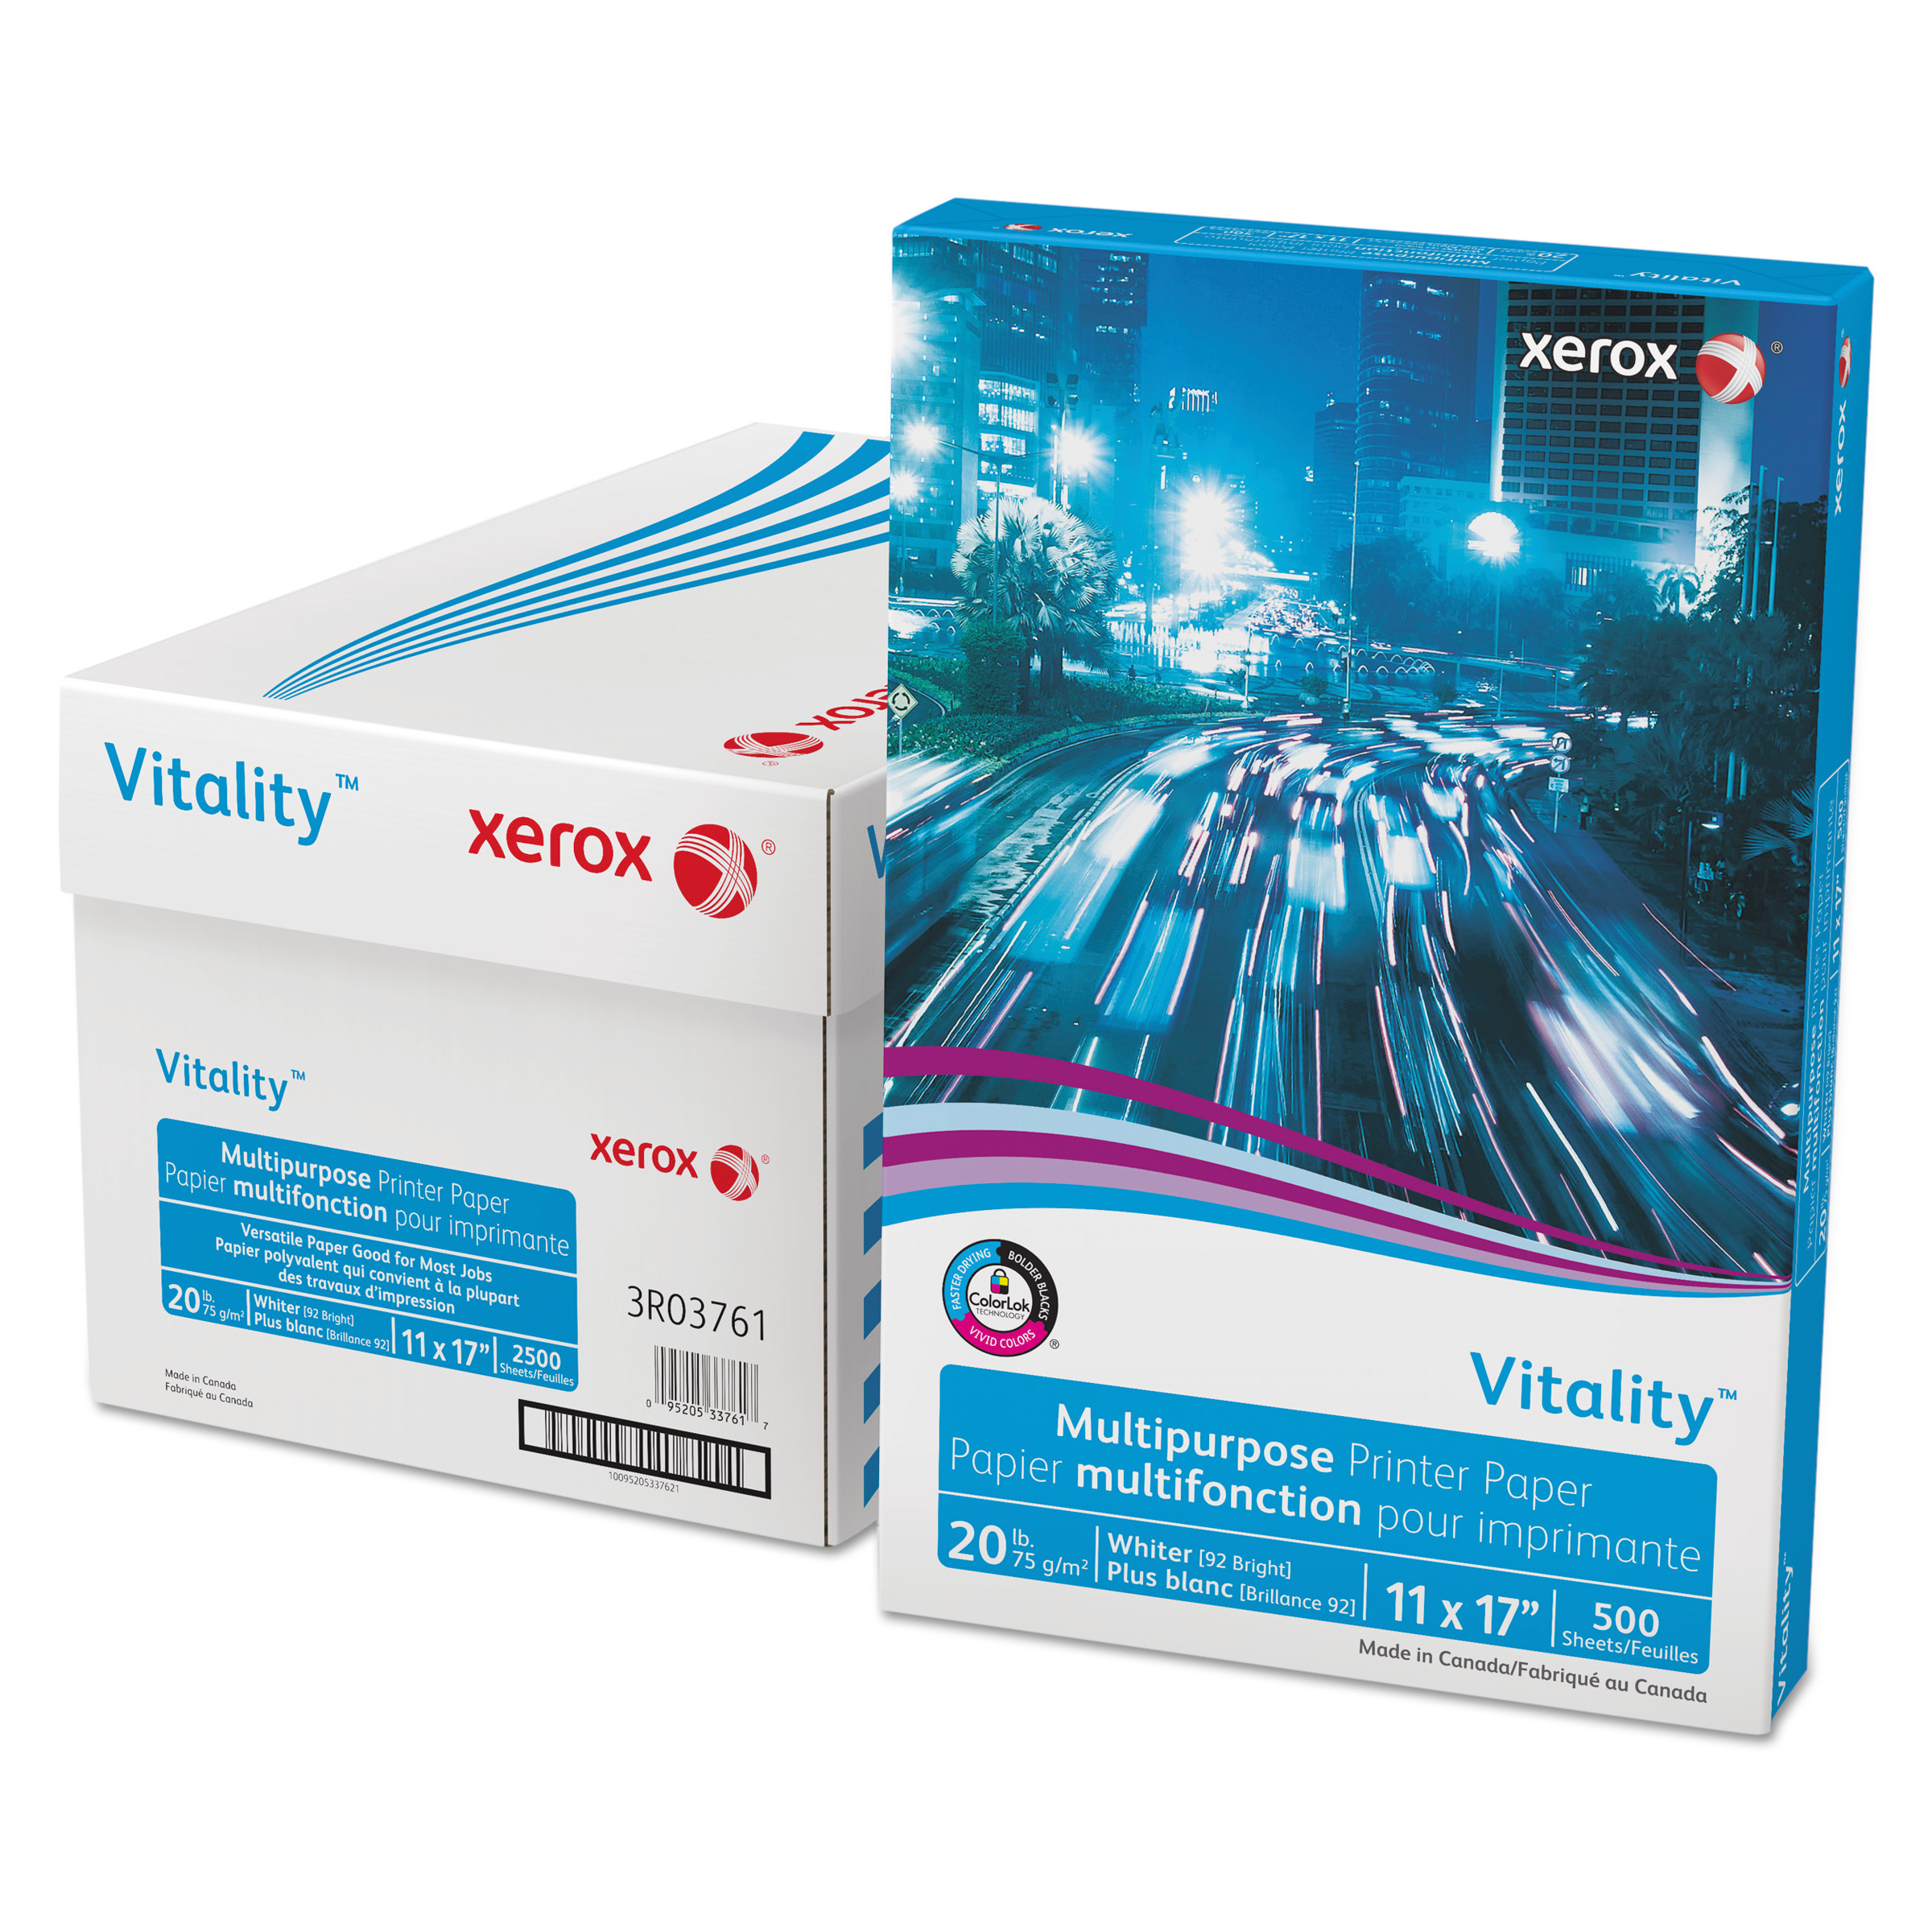 Xerox Vitality Multipurpose Printer Paper, 11 x 17, White, 500 Sheets/RM -XER3R03761